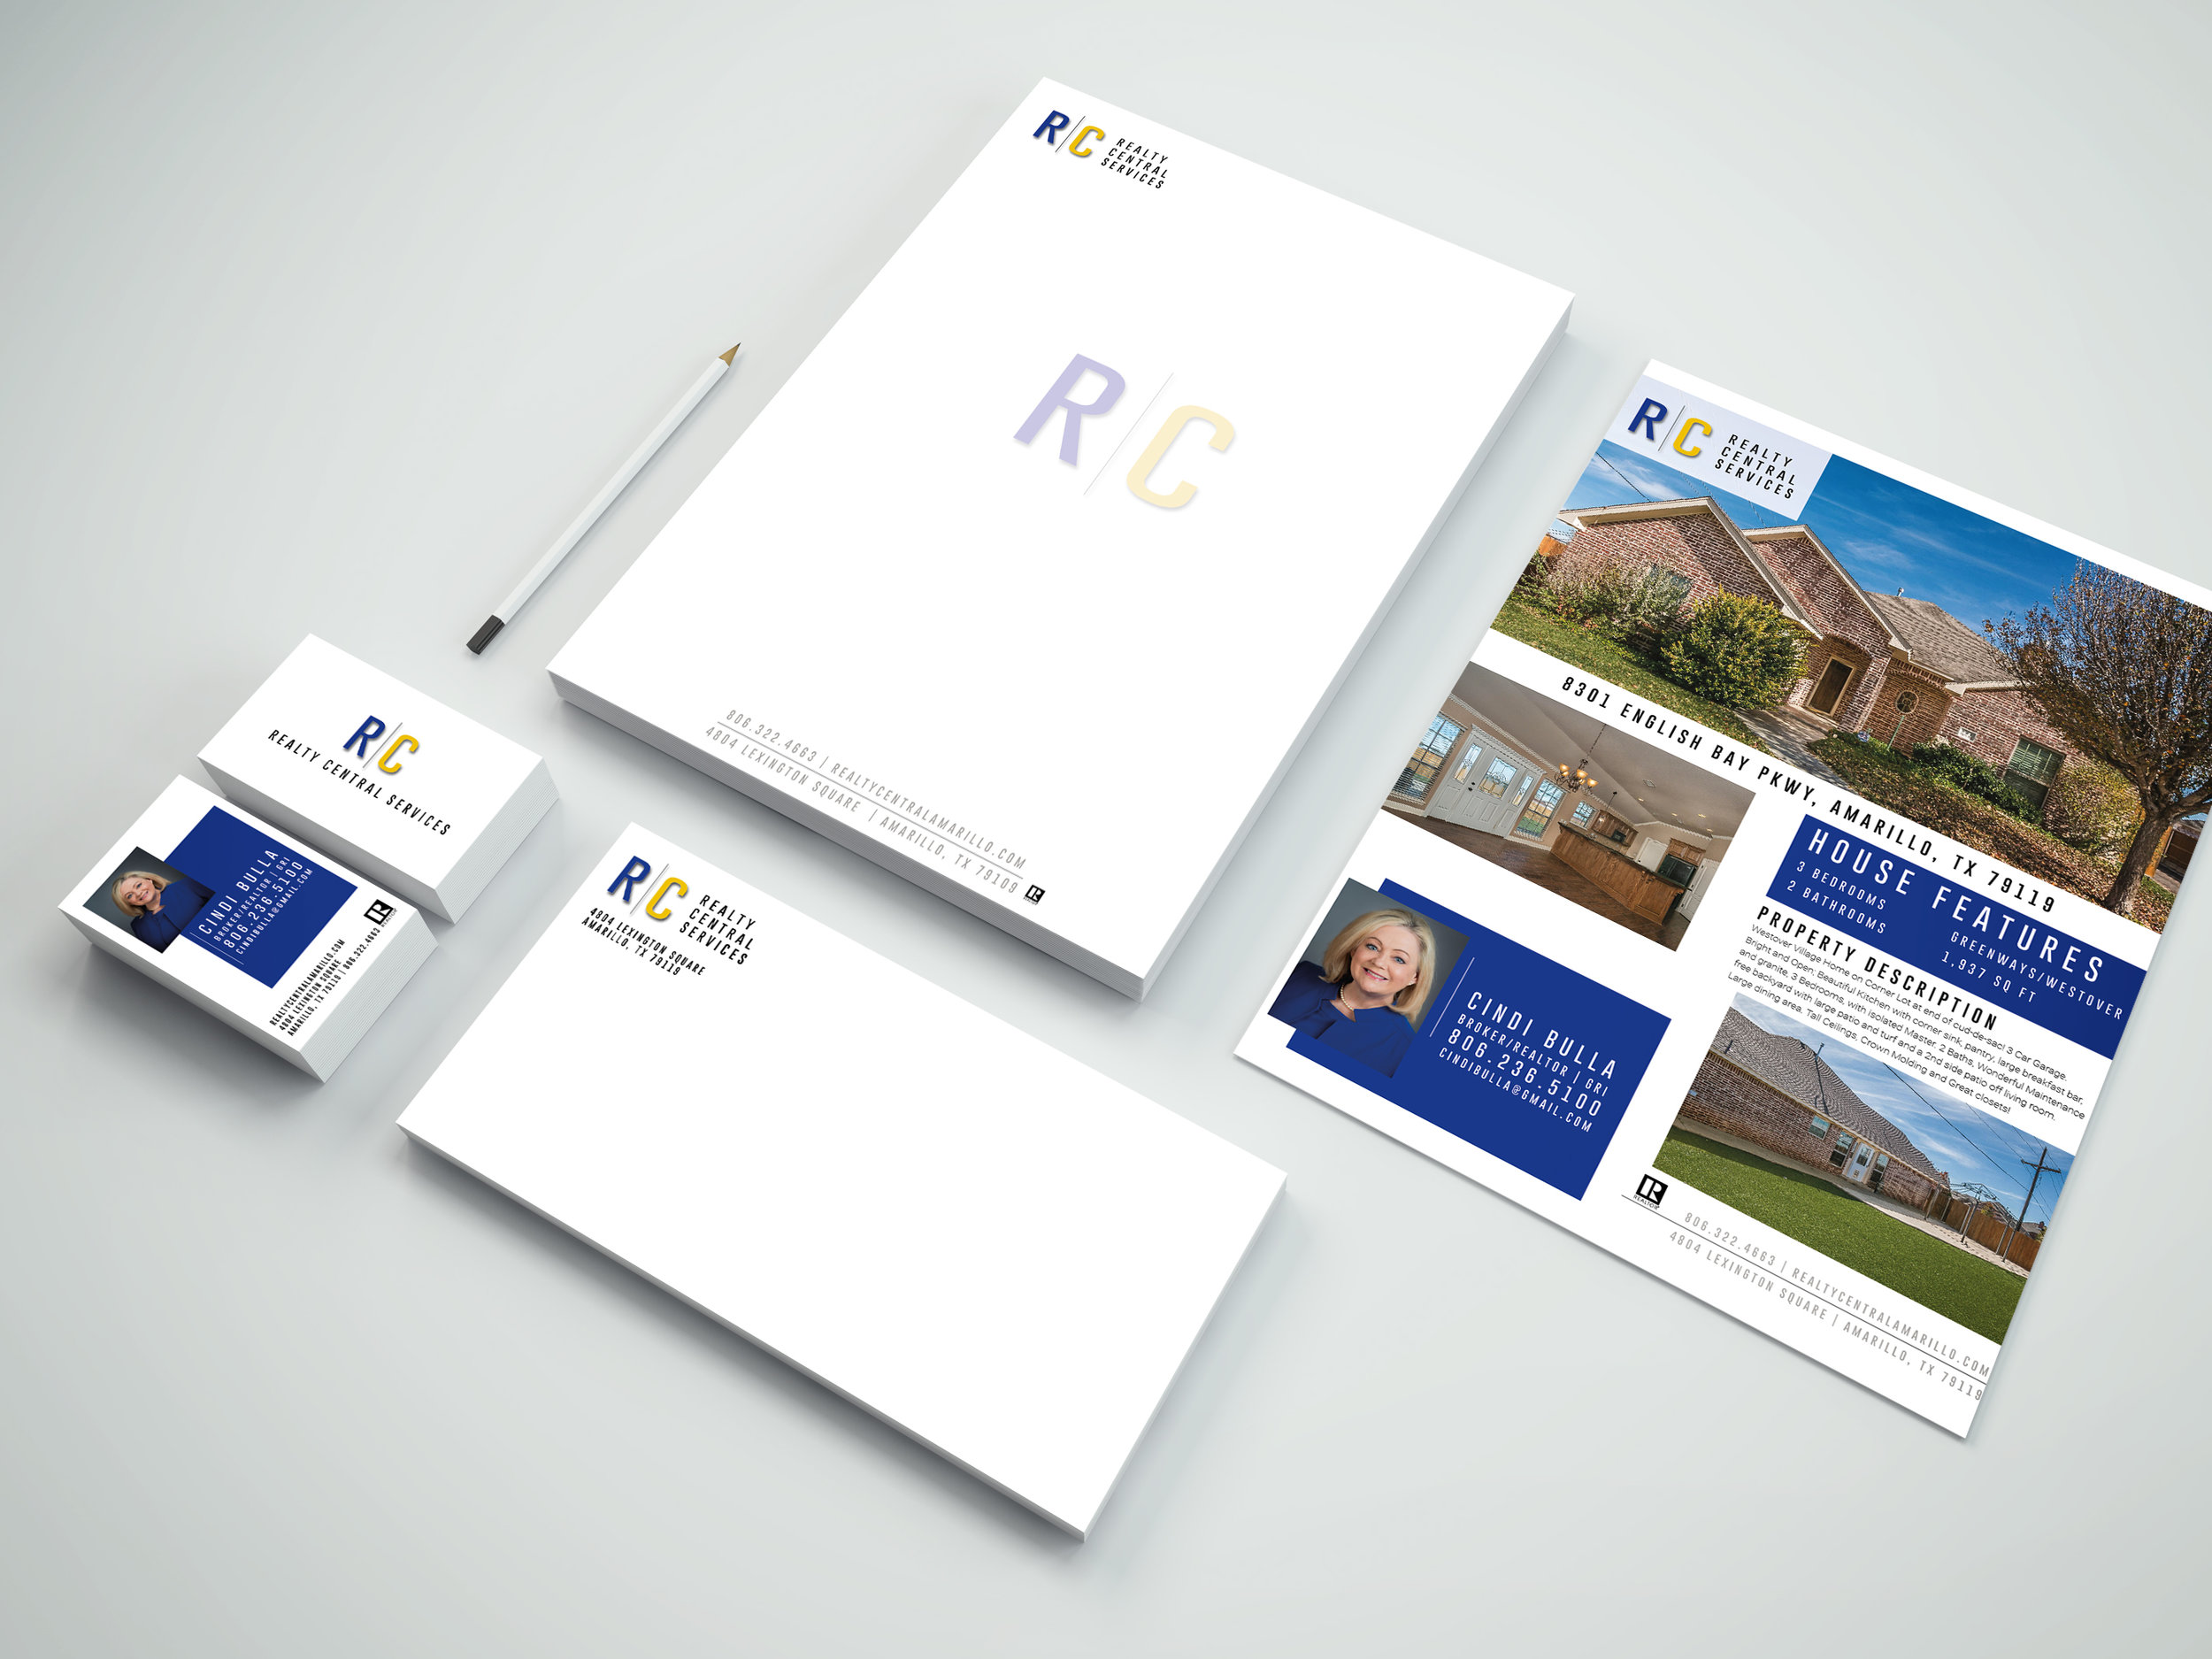 REALTY CENTRAL SERVICES |  REBRANDING, WEBSITE OPTIMIZATION, SIGN DESIGN, MARKETING MATERIALS, SOCIAL STYLING